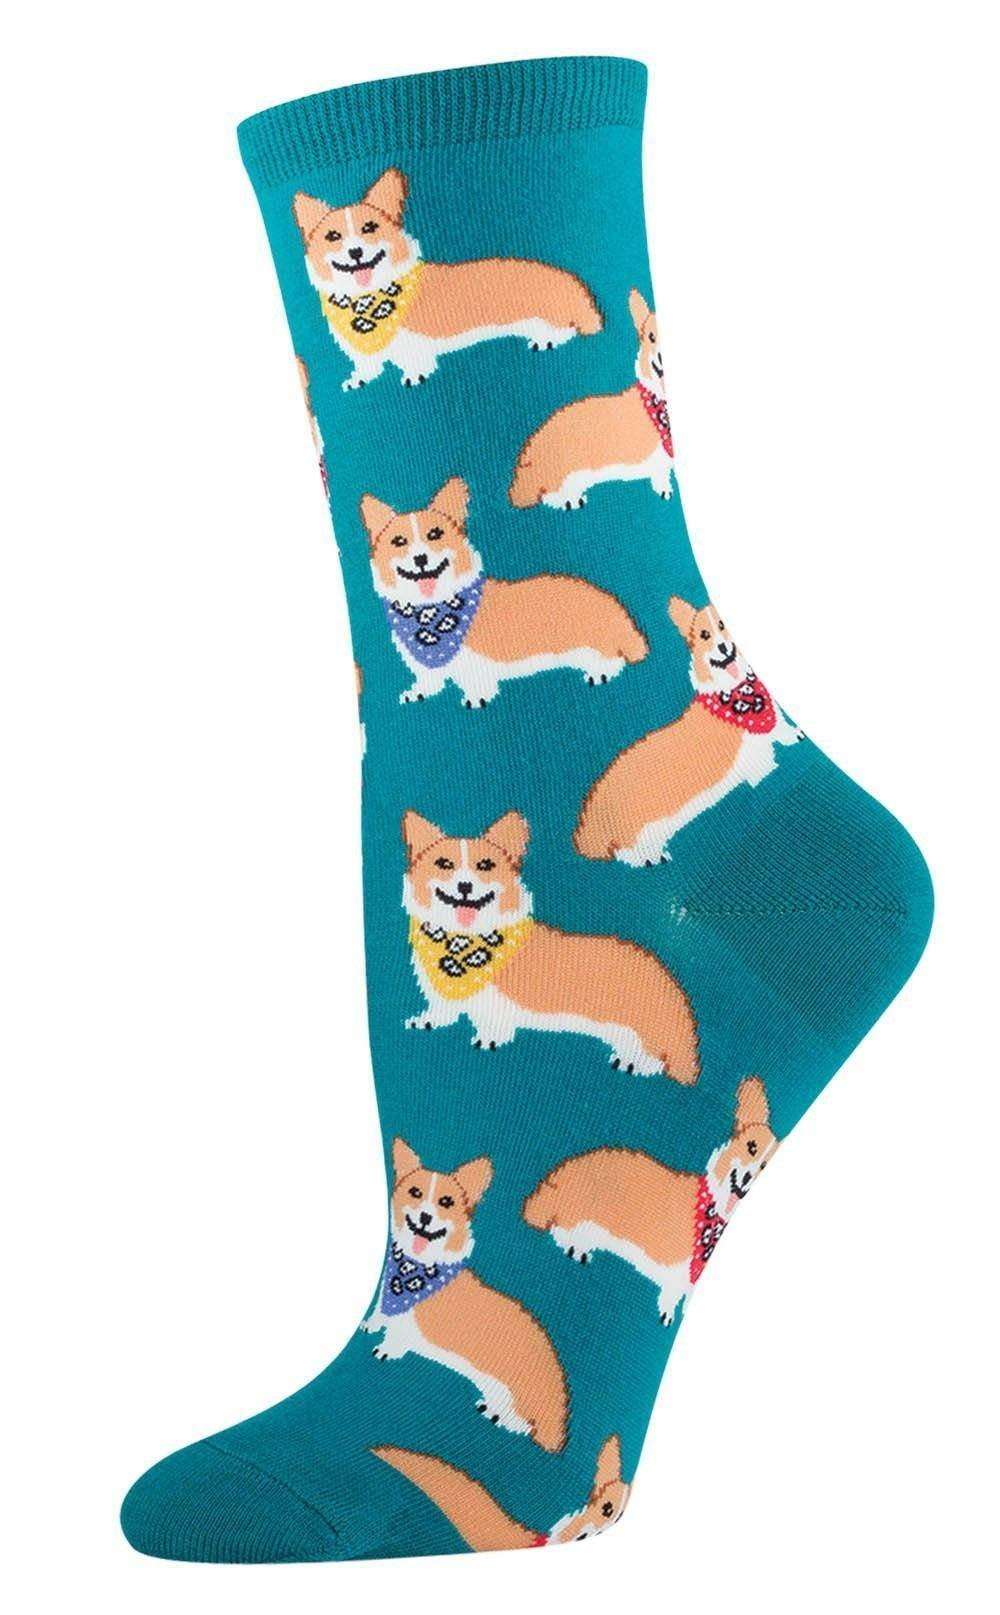 Socksmith - Corgi Crew Socks | Women's - Knock Your Socks Off